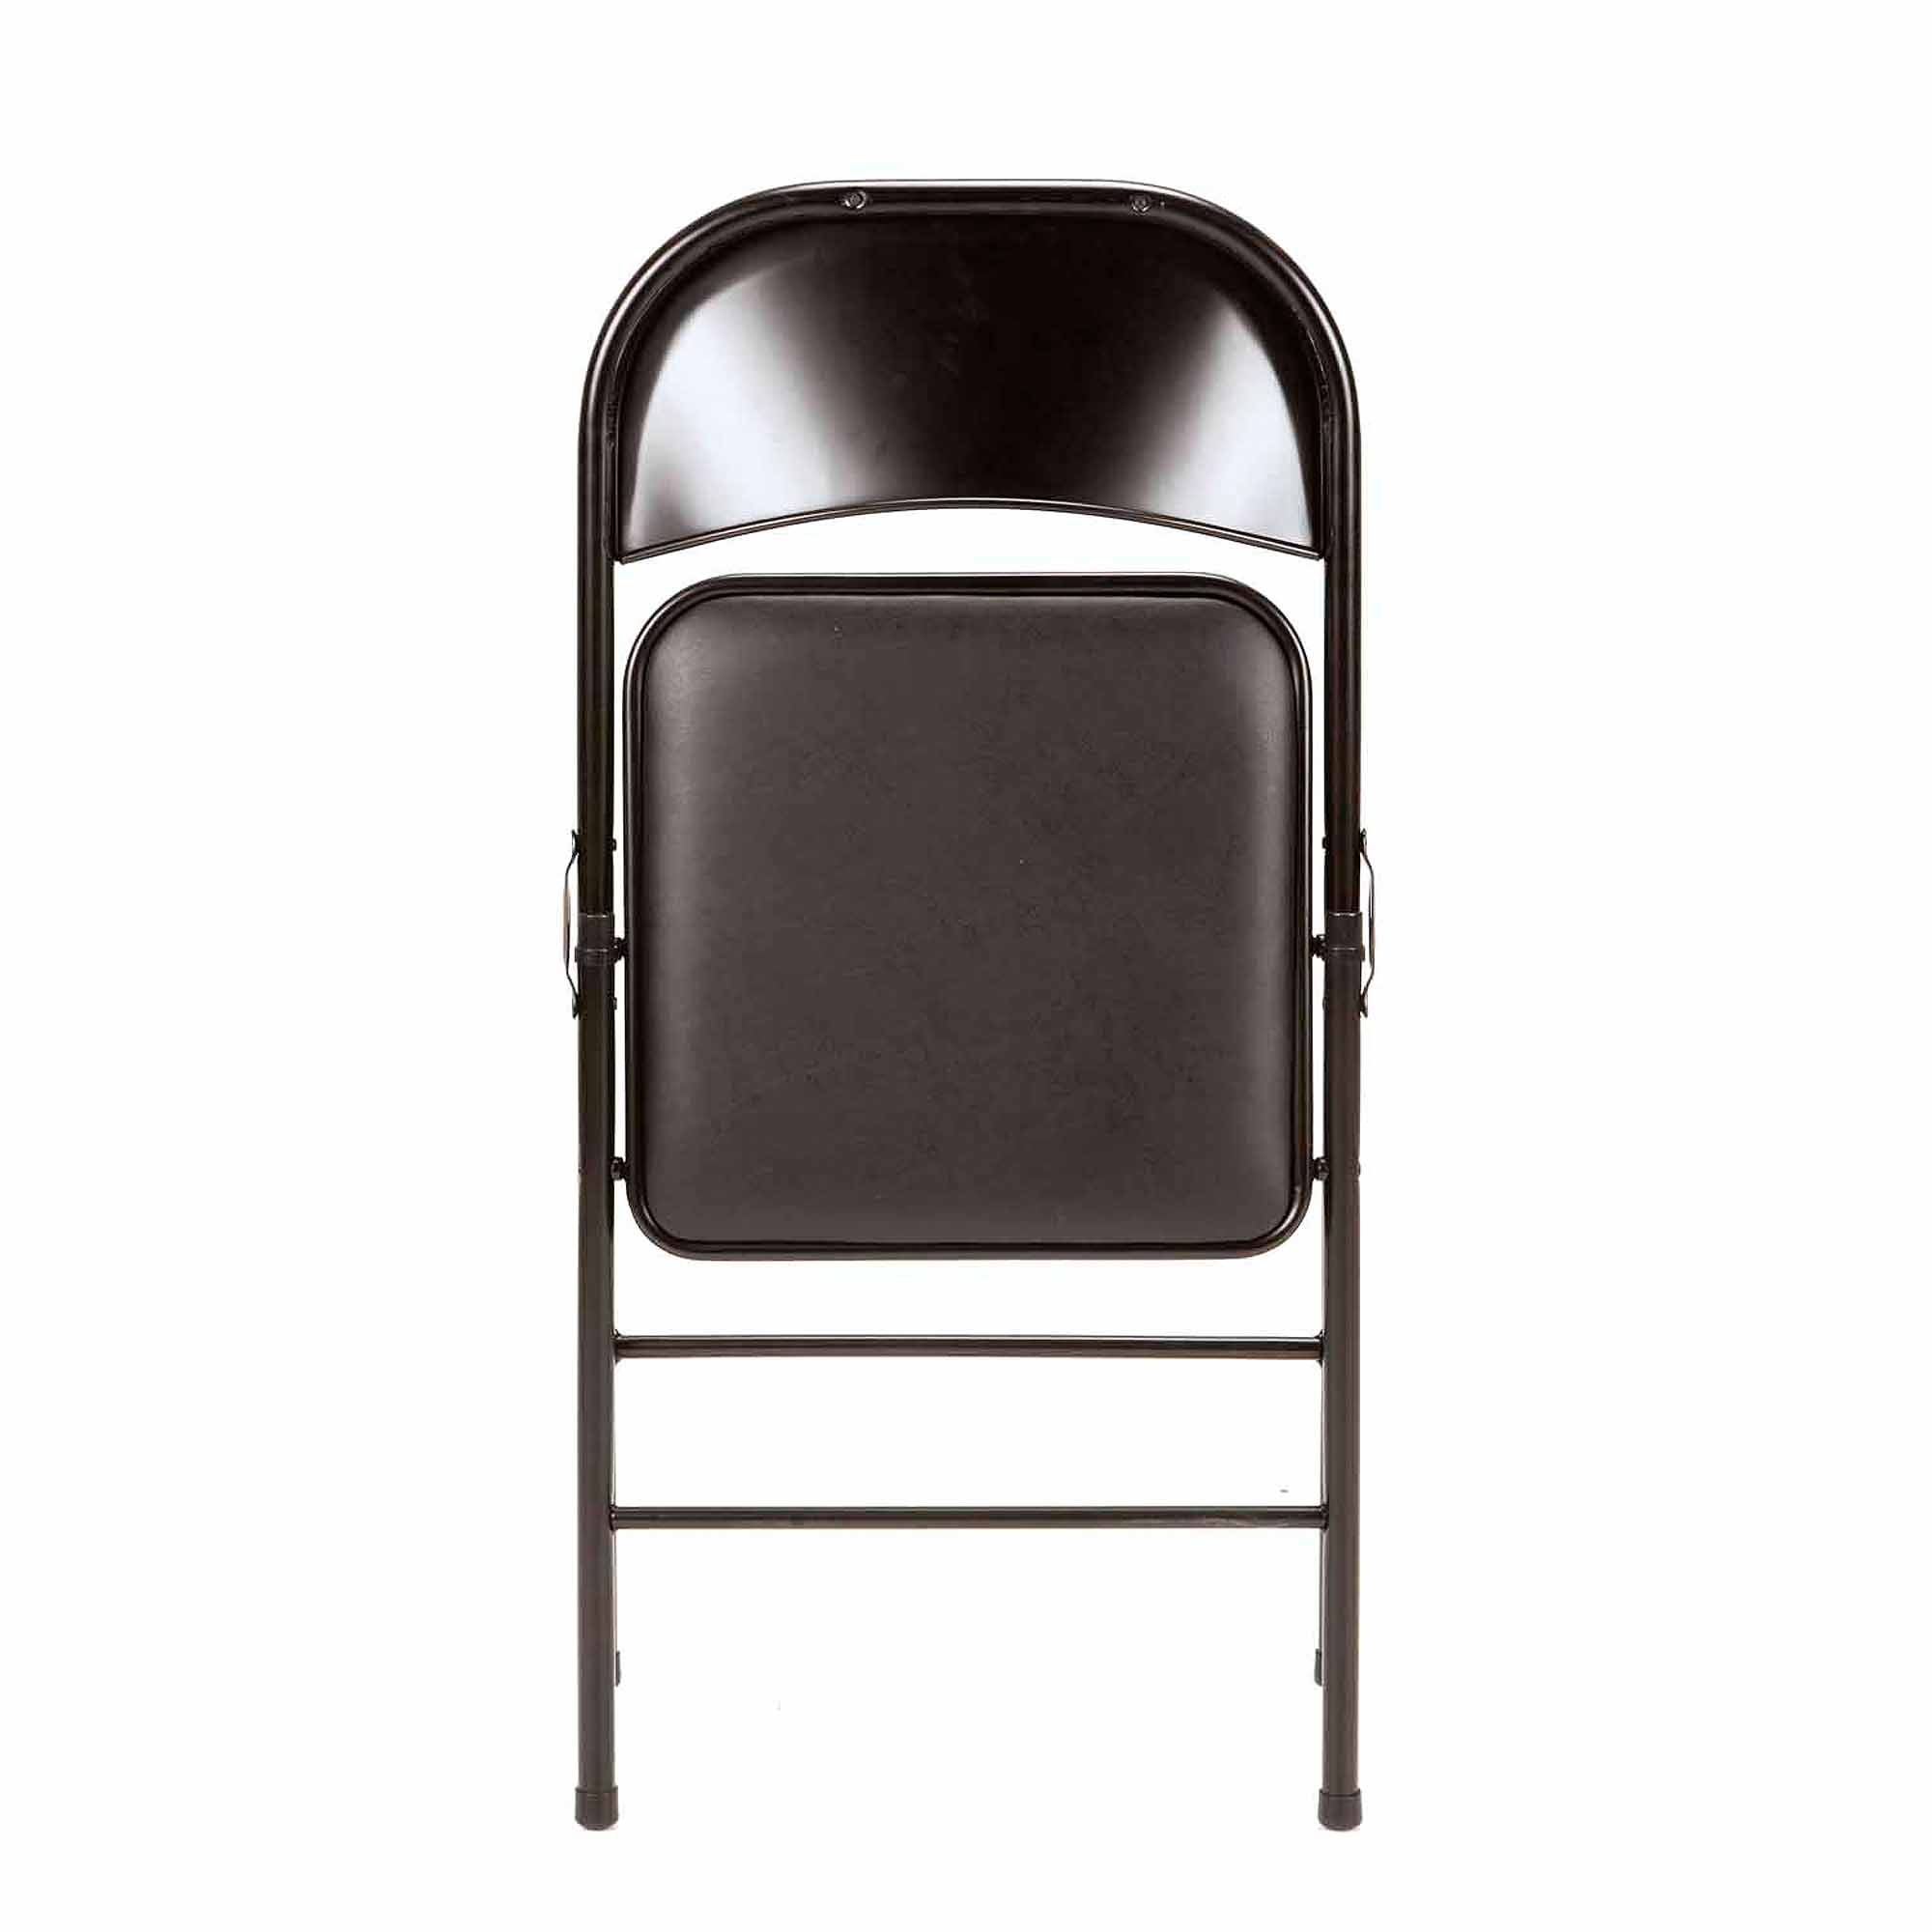 Chairs Folding Mainstays Vinyl 4 Pack Folding Chair In Black